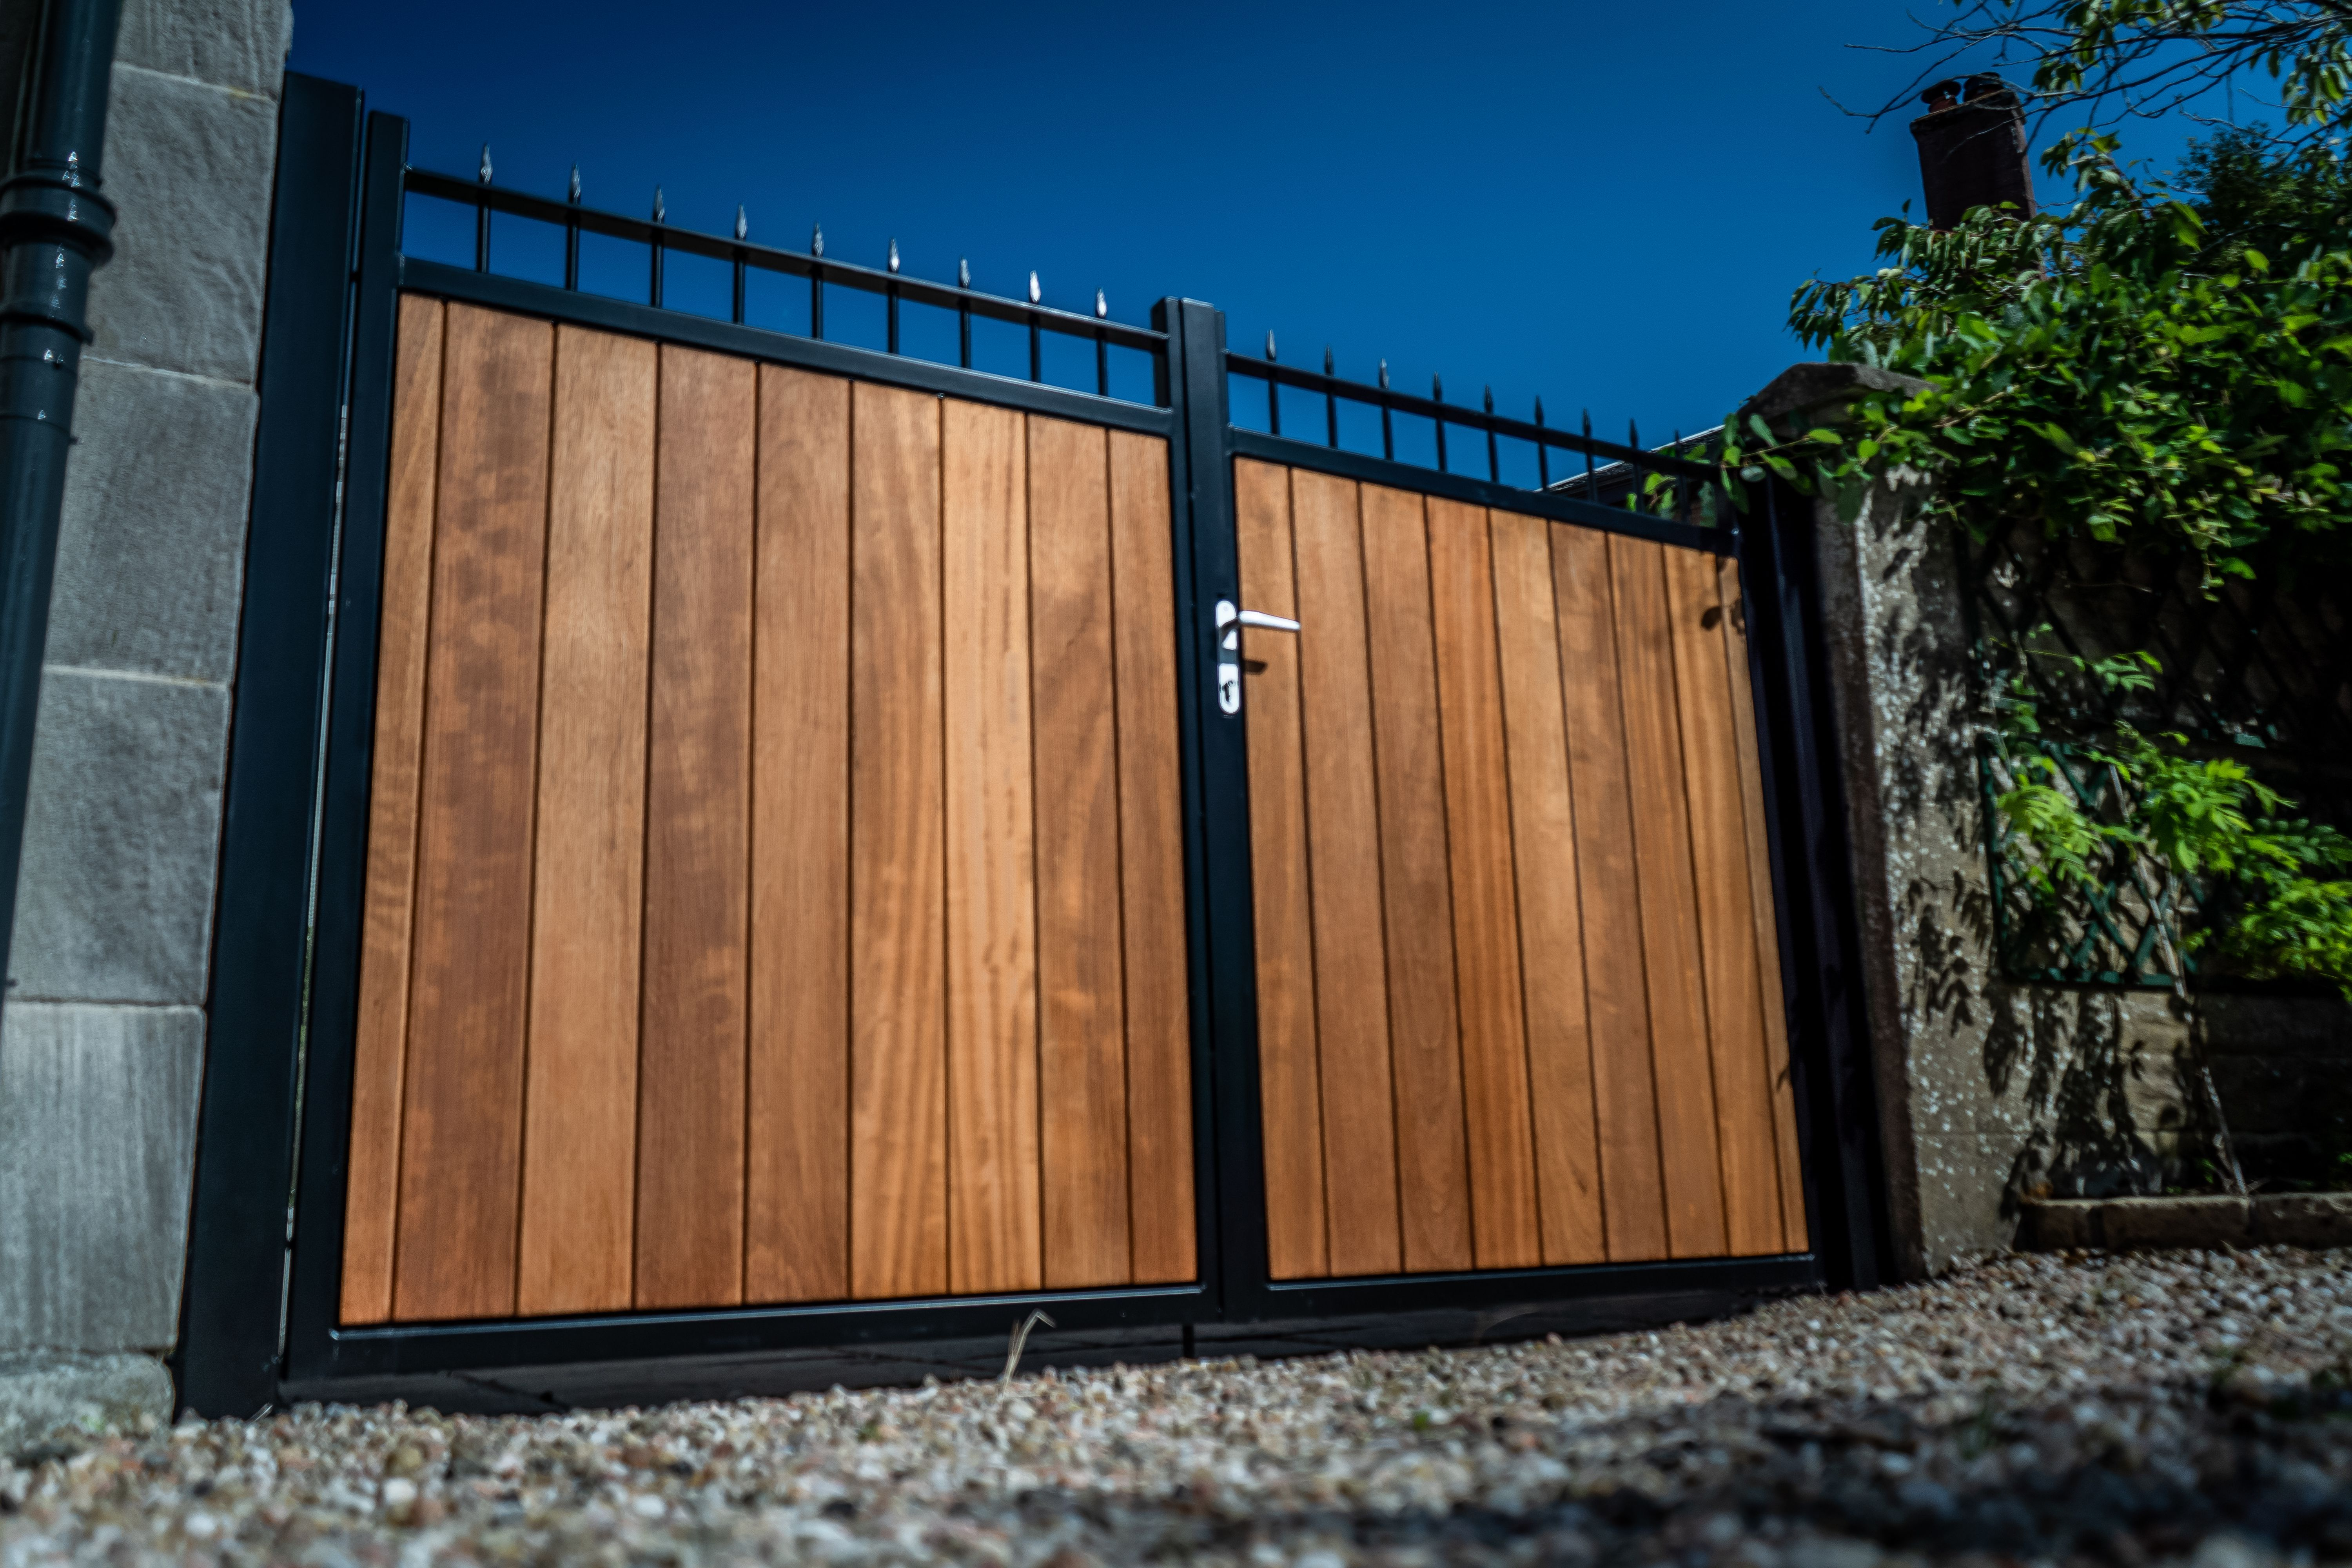 12 X 6 Wood Gate W Steel Frame Andrew Thomas Contractors